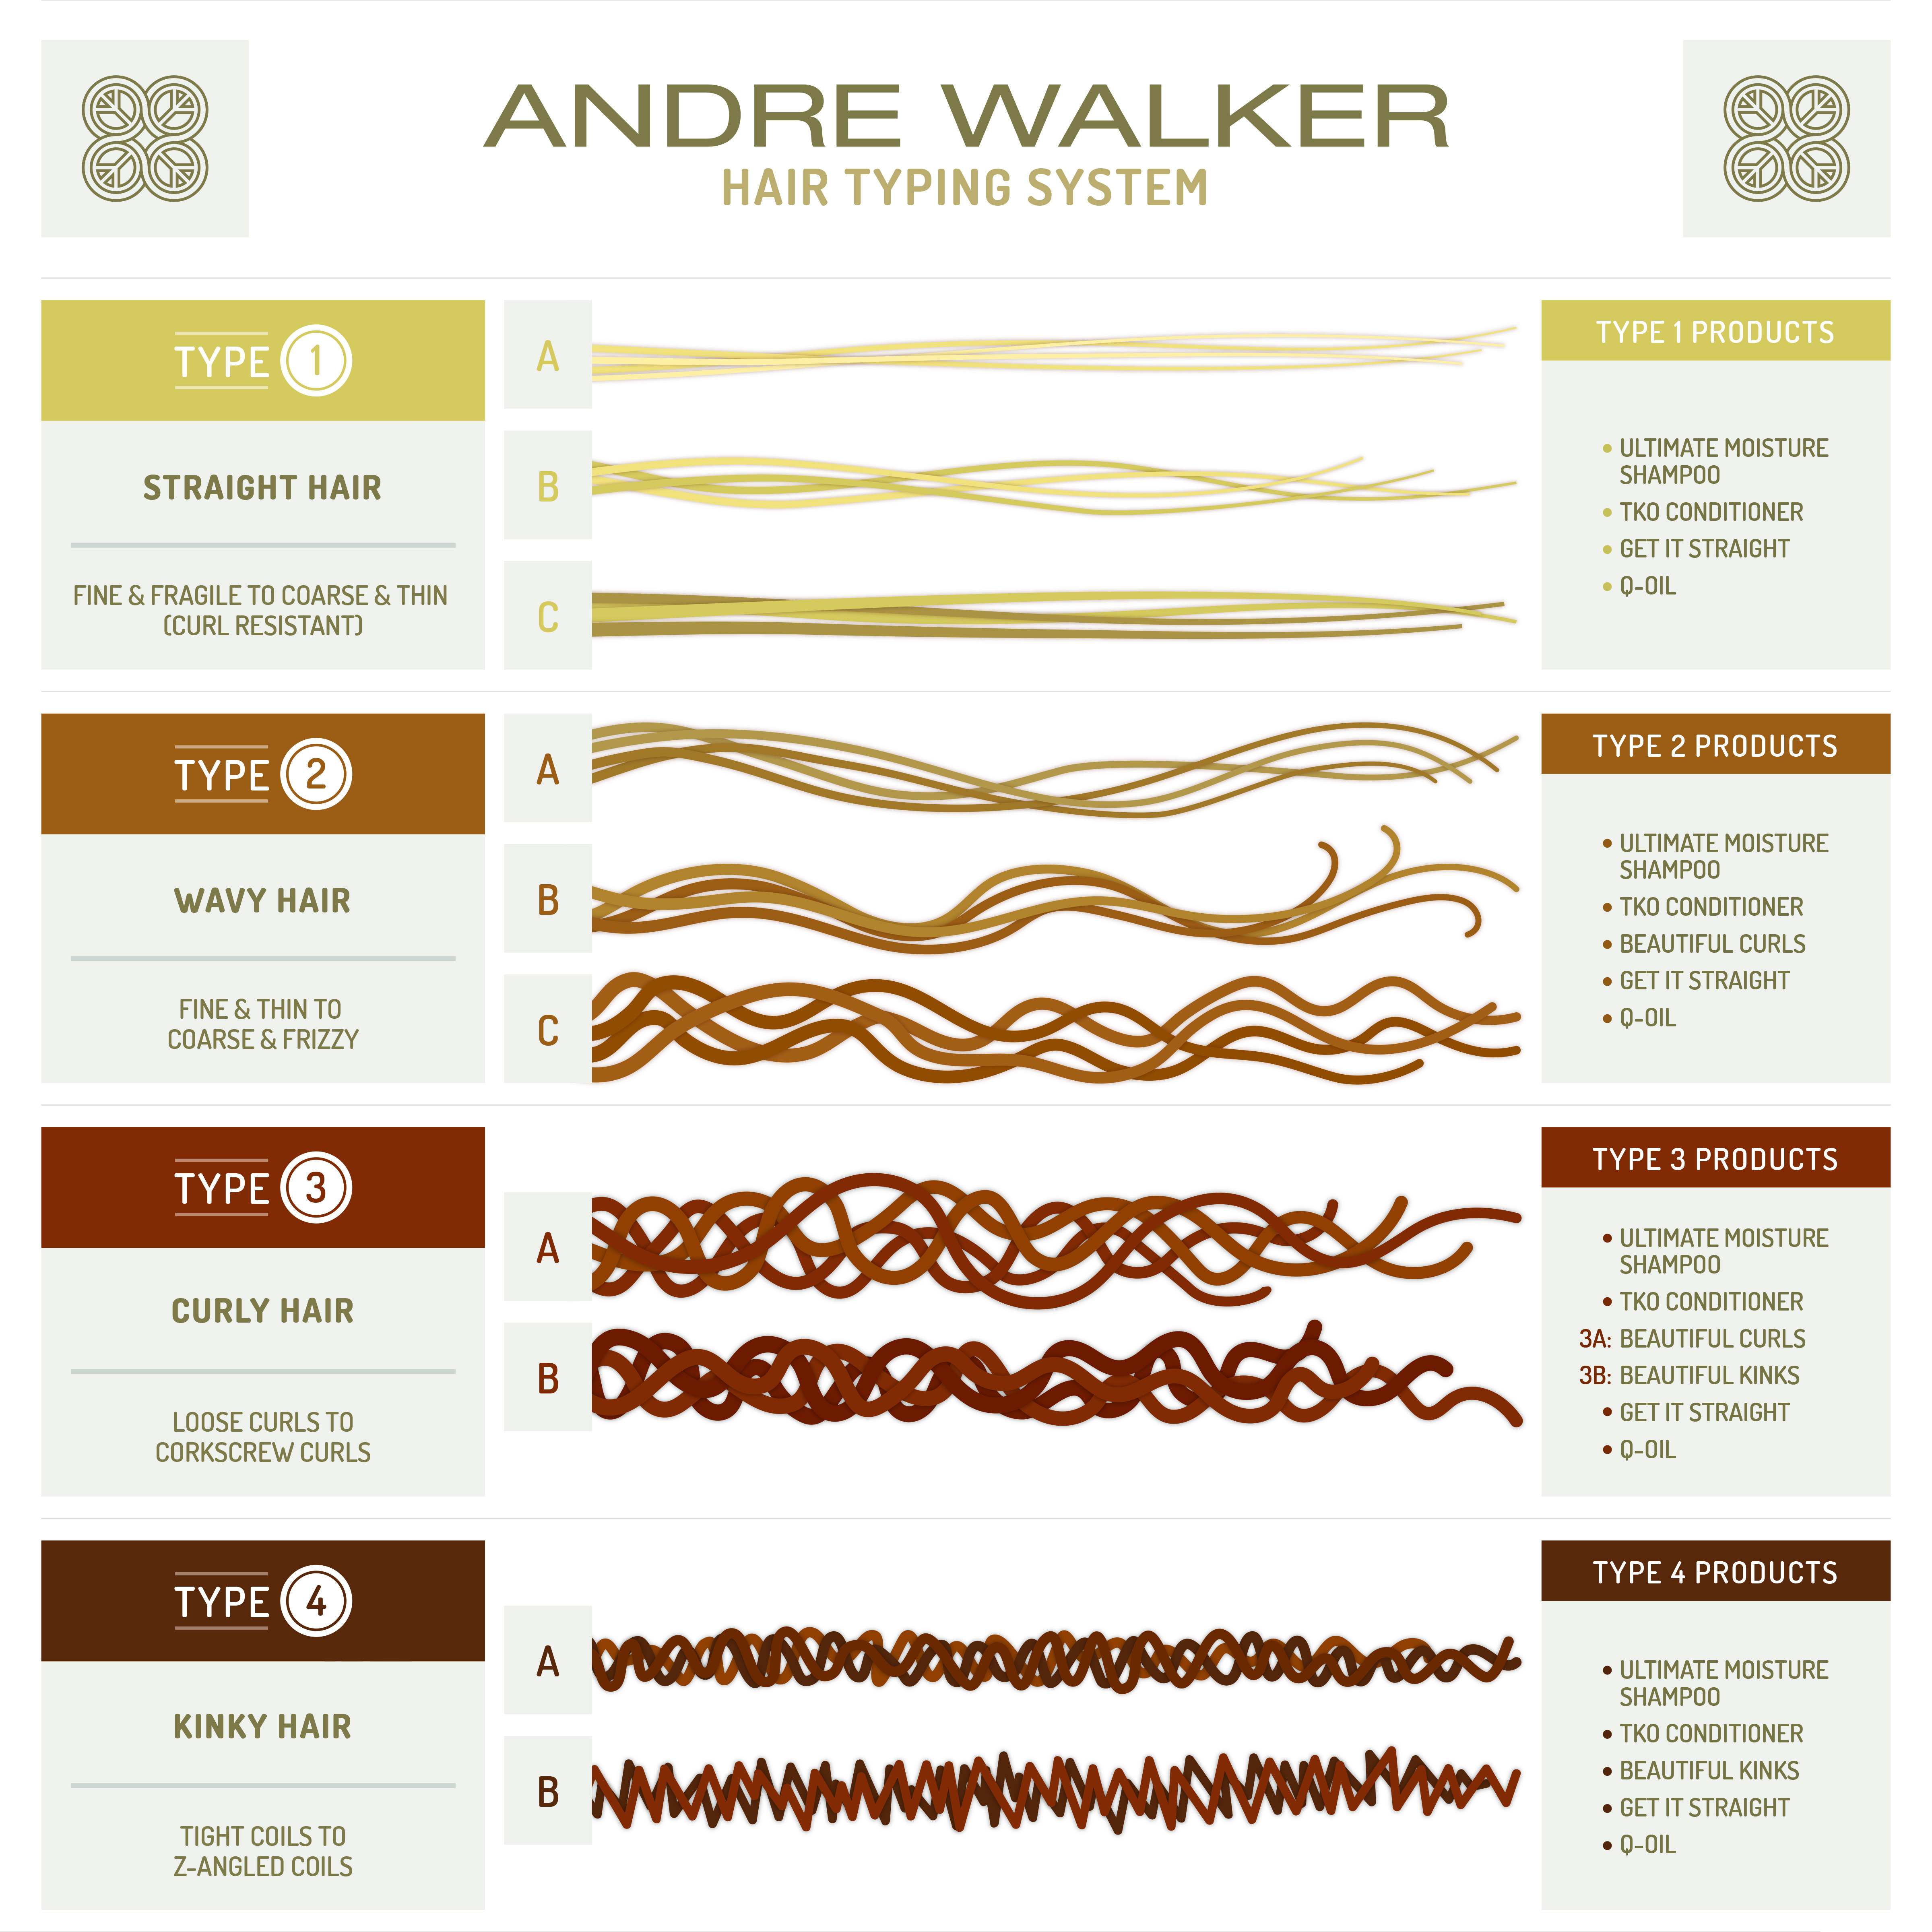 AW_HairChart_Products_4